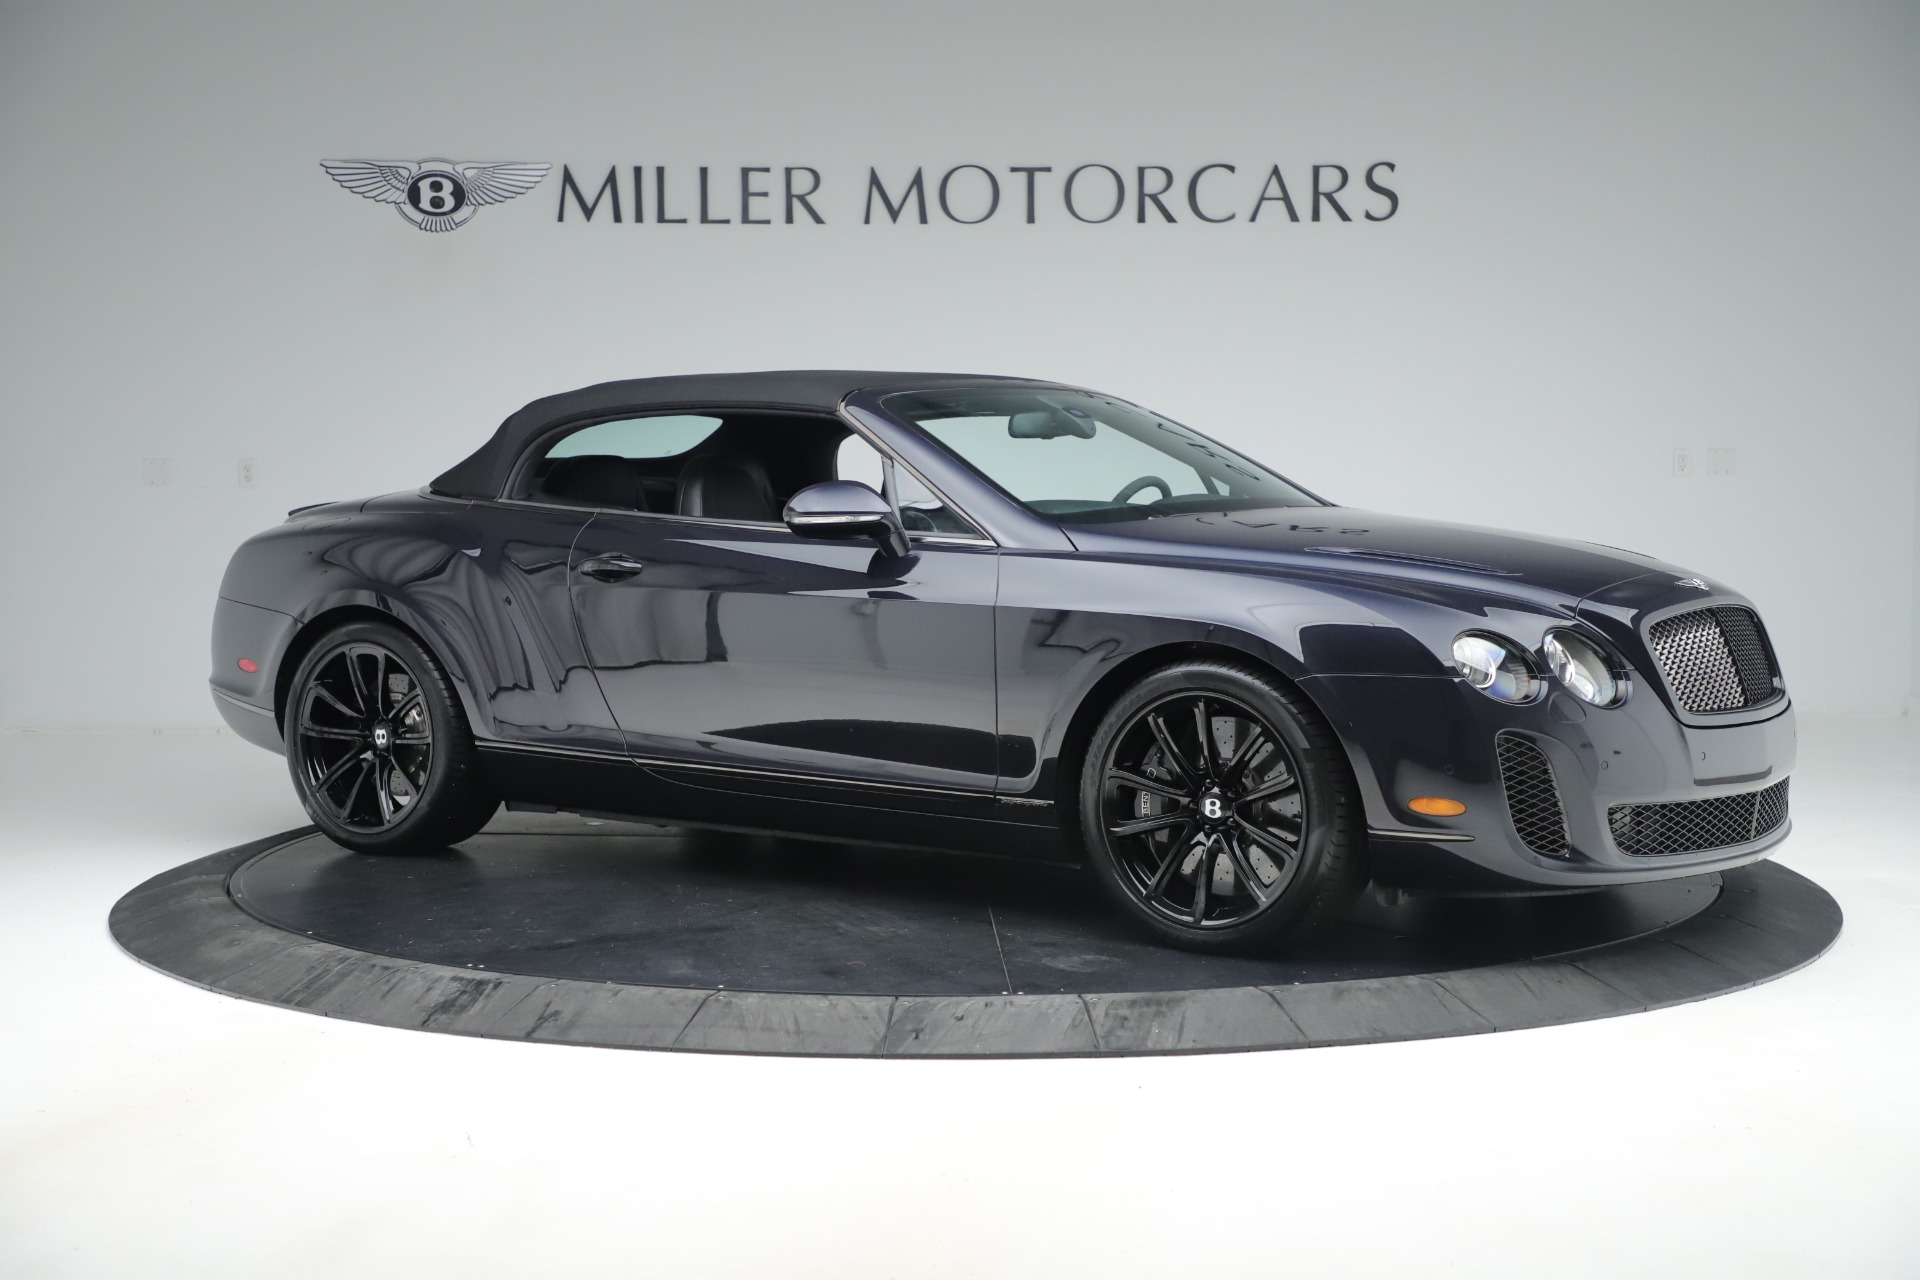 Used 2012 Bentley Continental GT Supersports For Sale In Westport, CT 3214_p18